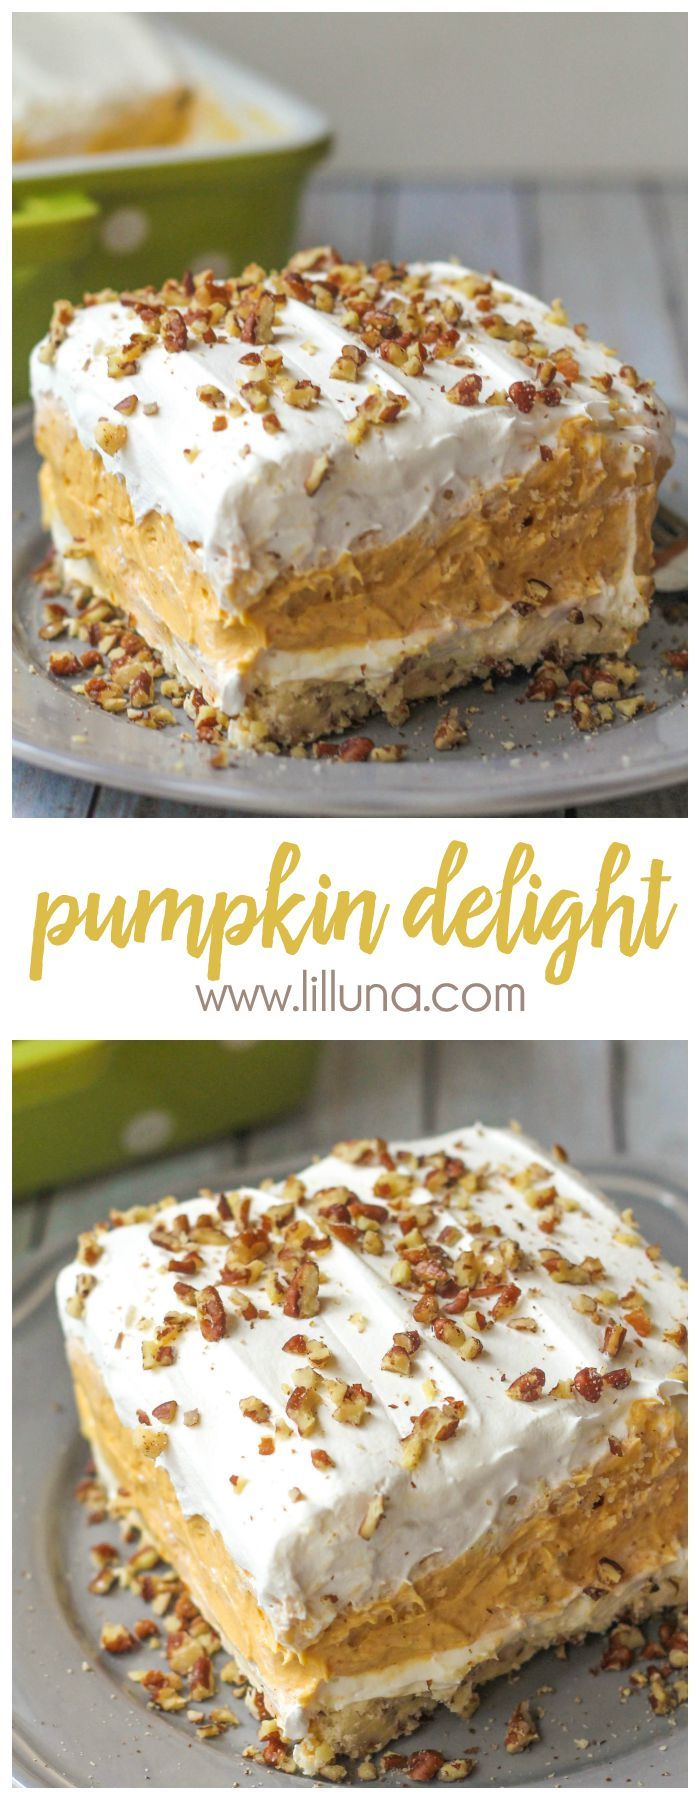 Creamy and Cool Pumpkin Delight recipe - this layered dessert is SO good and perfect for fall! { lilluna.com }